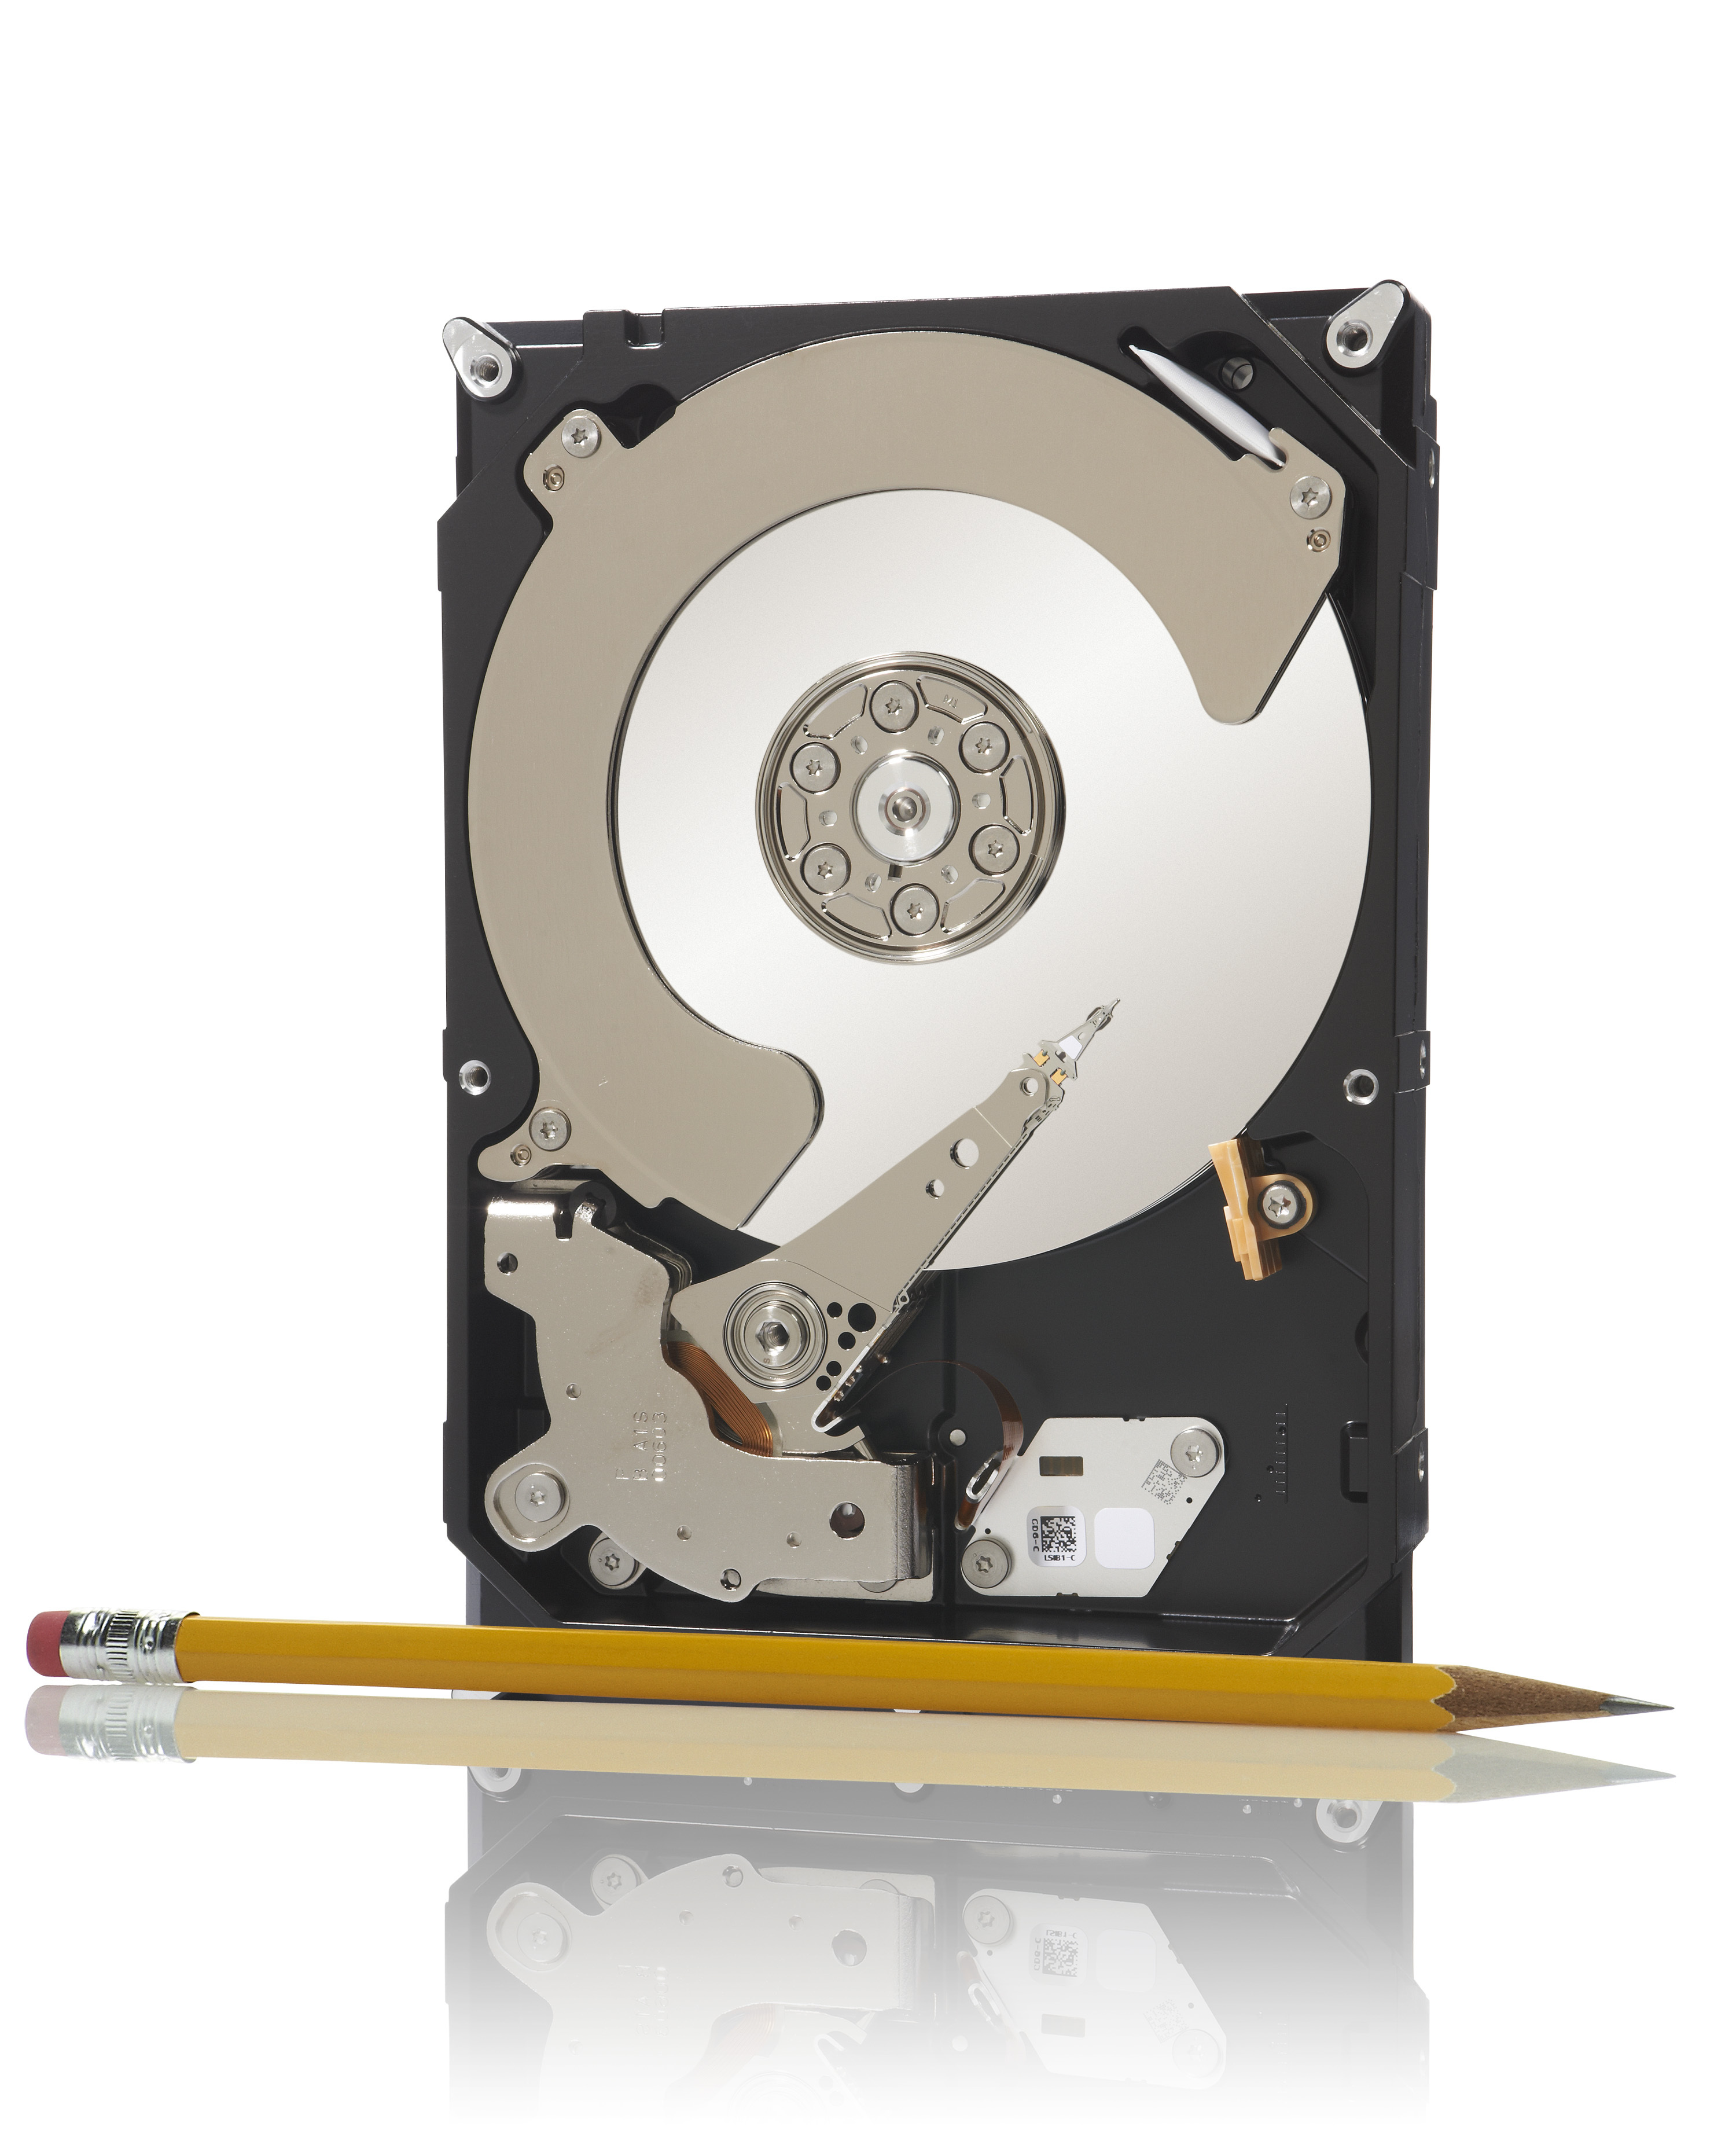 The new Desktop HDD is the first desktop hard drive from Seagate with the new naming scheme.